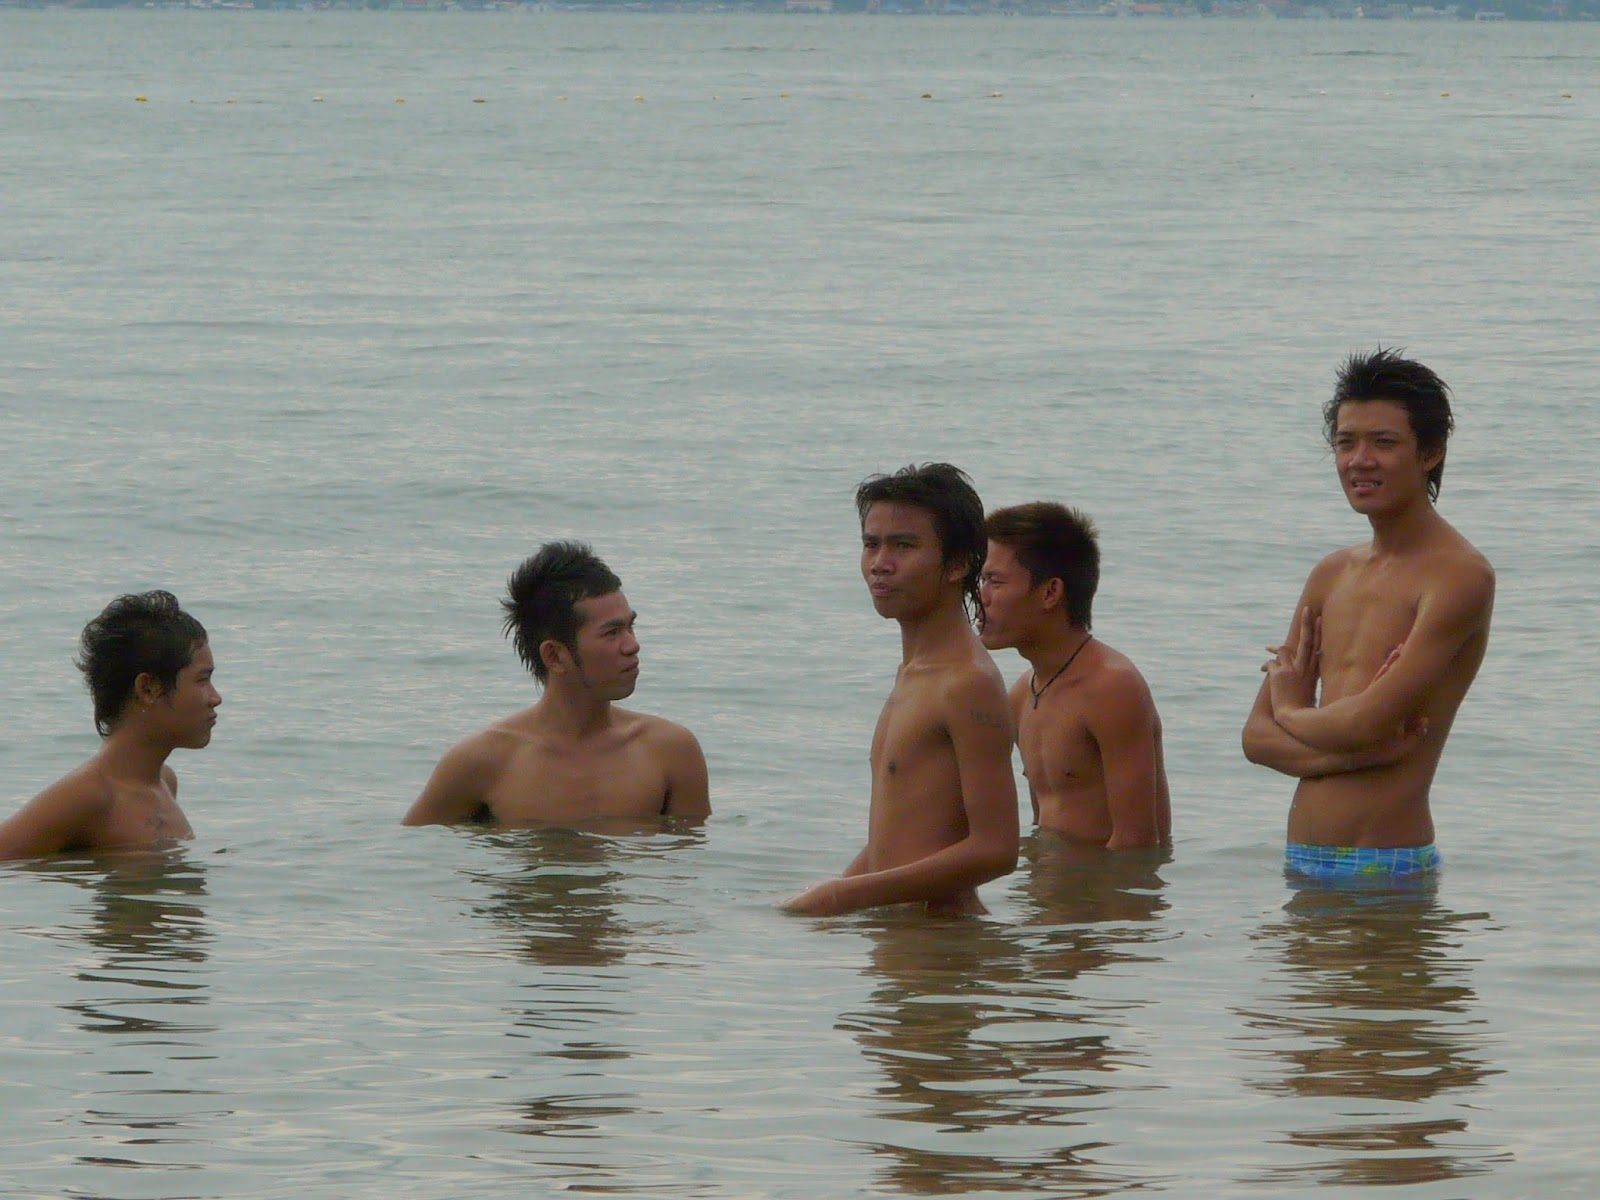 Beach boys on Jomtien gay beach, Pattaya